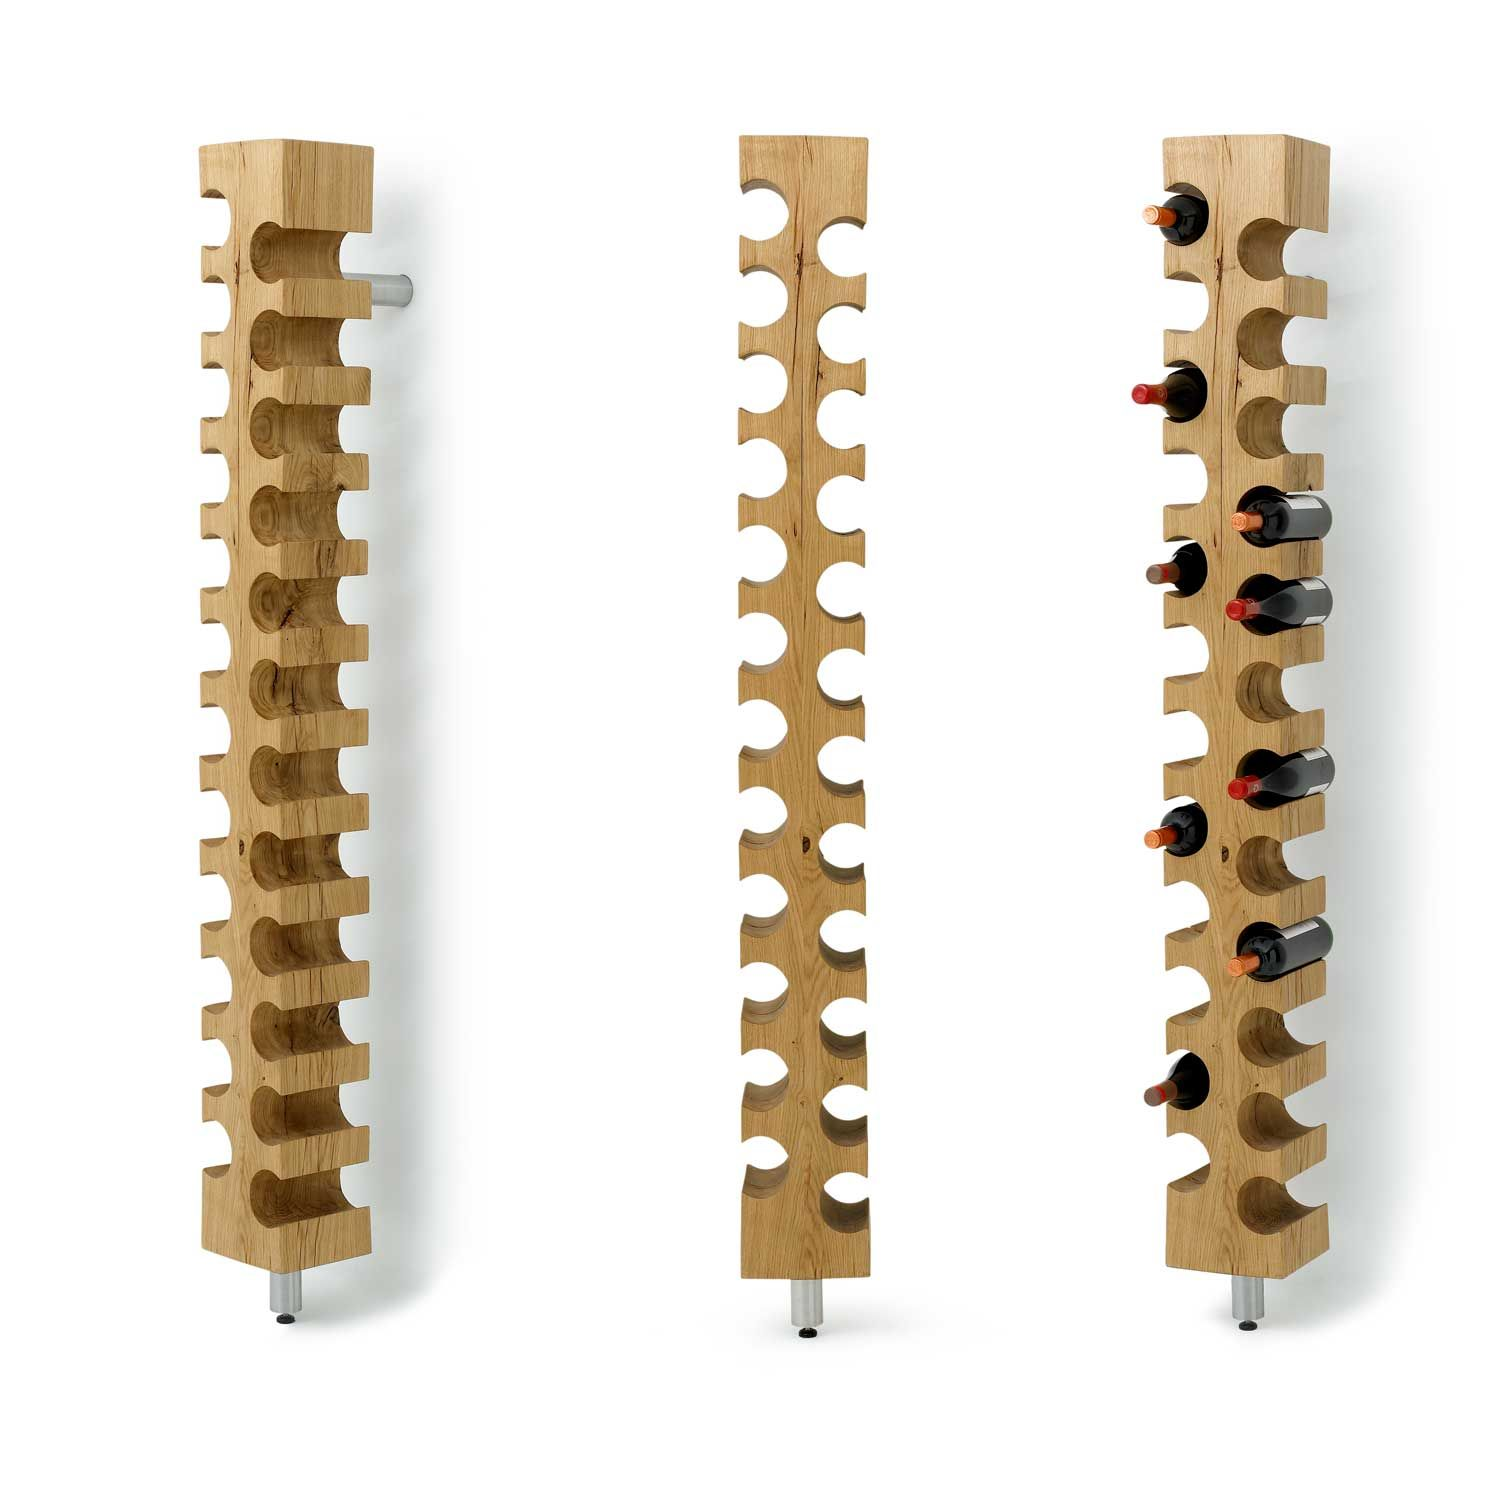 Uncategorized Tall Thin Wine Rack kitchen interior wine bottle furniture cool wall mount wooden rack creative racks tall and bath accessories oa